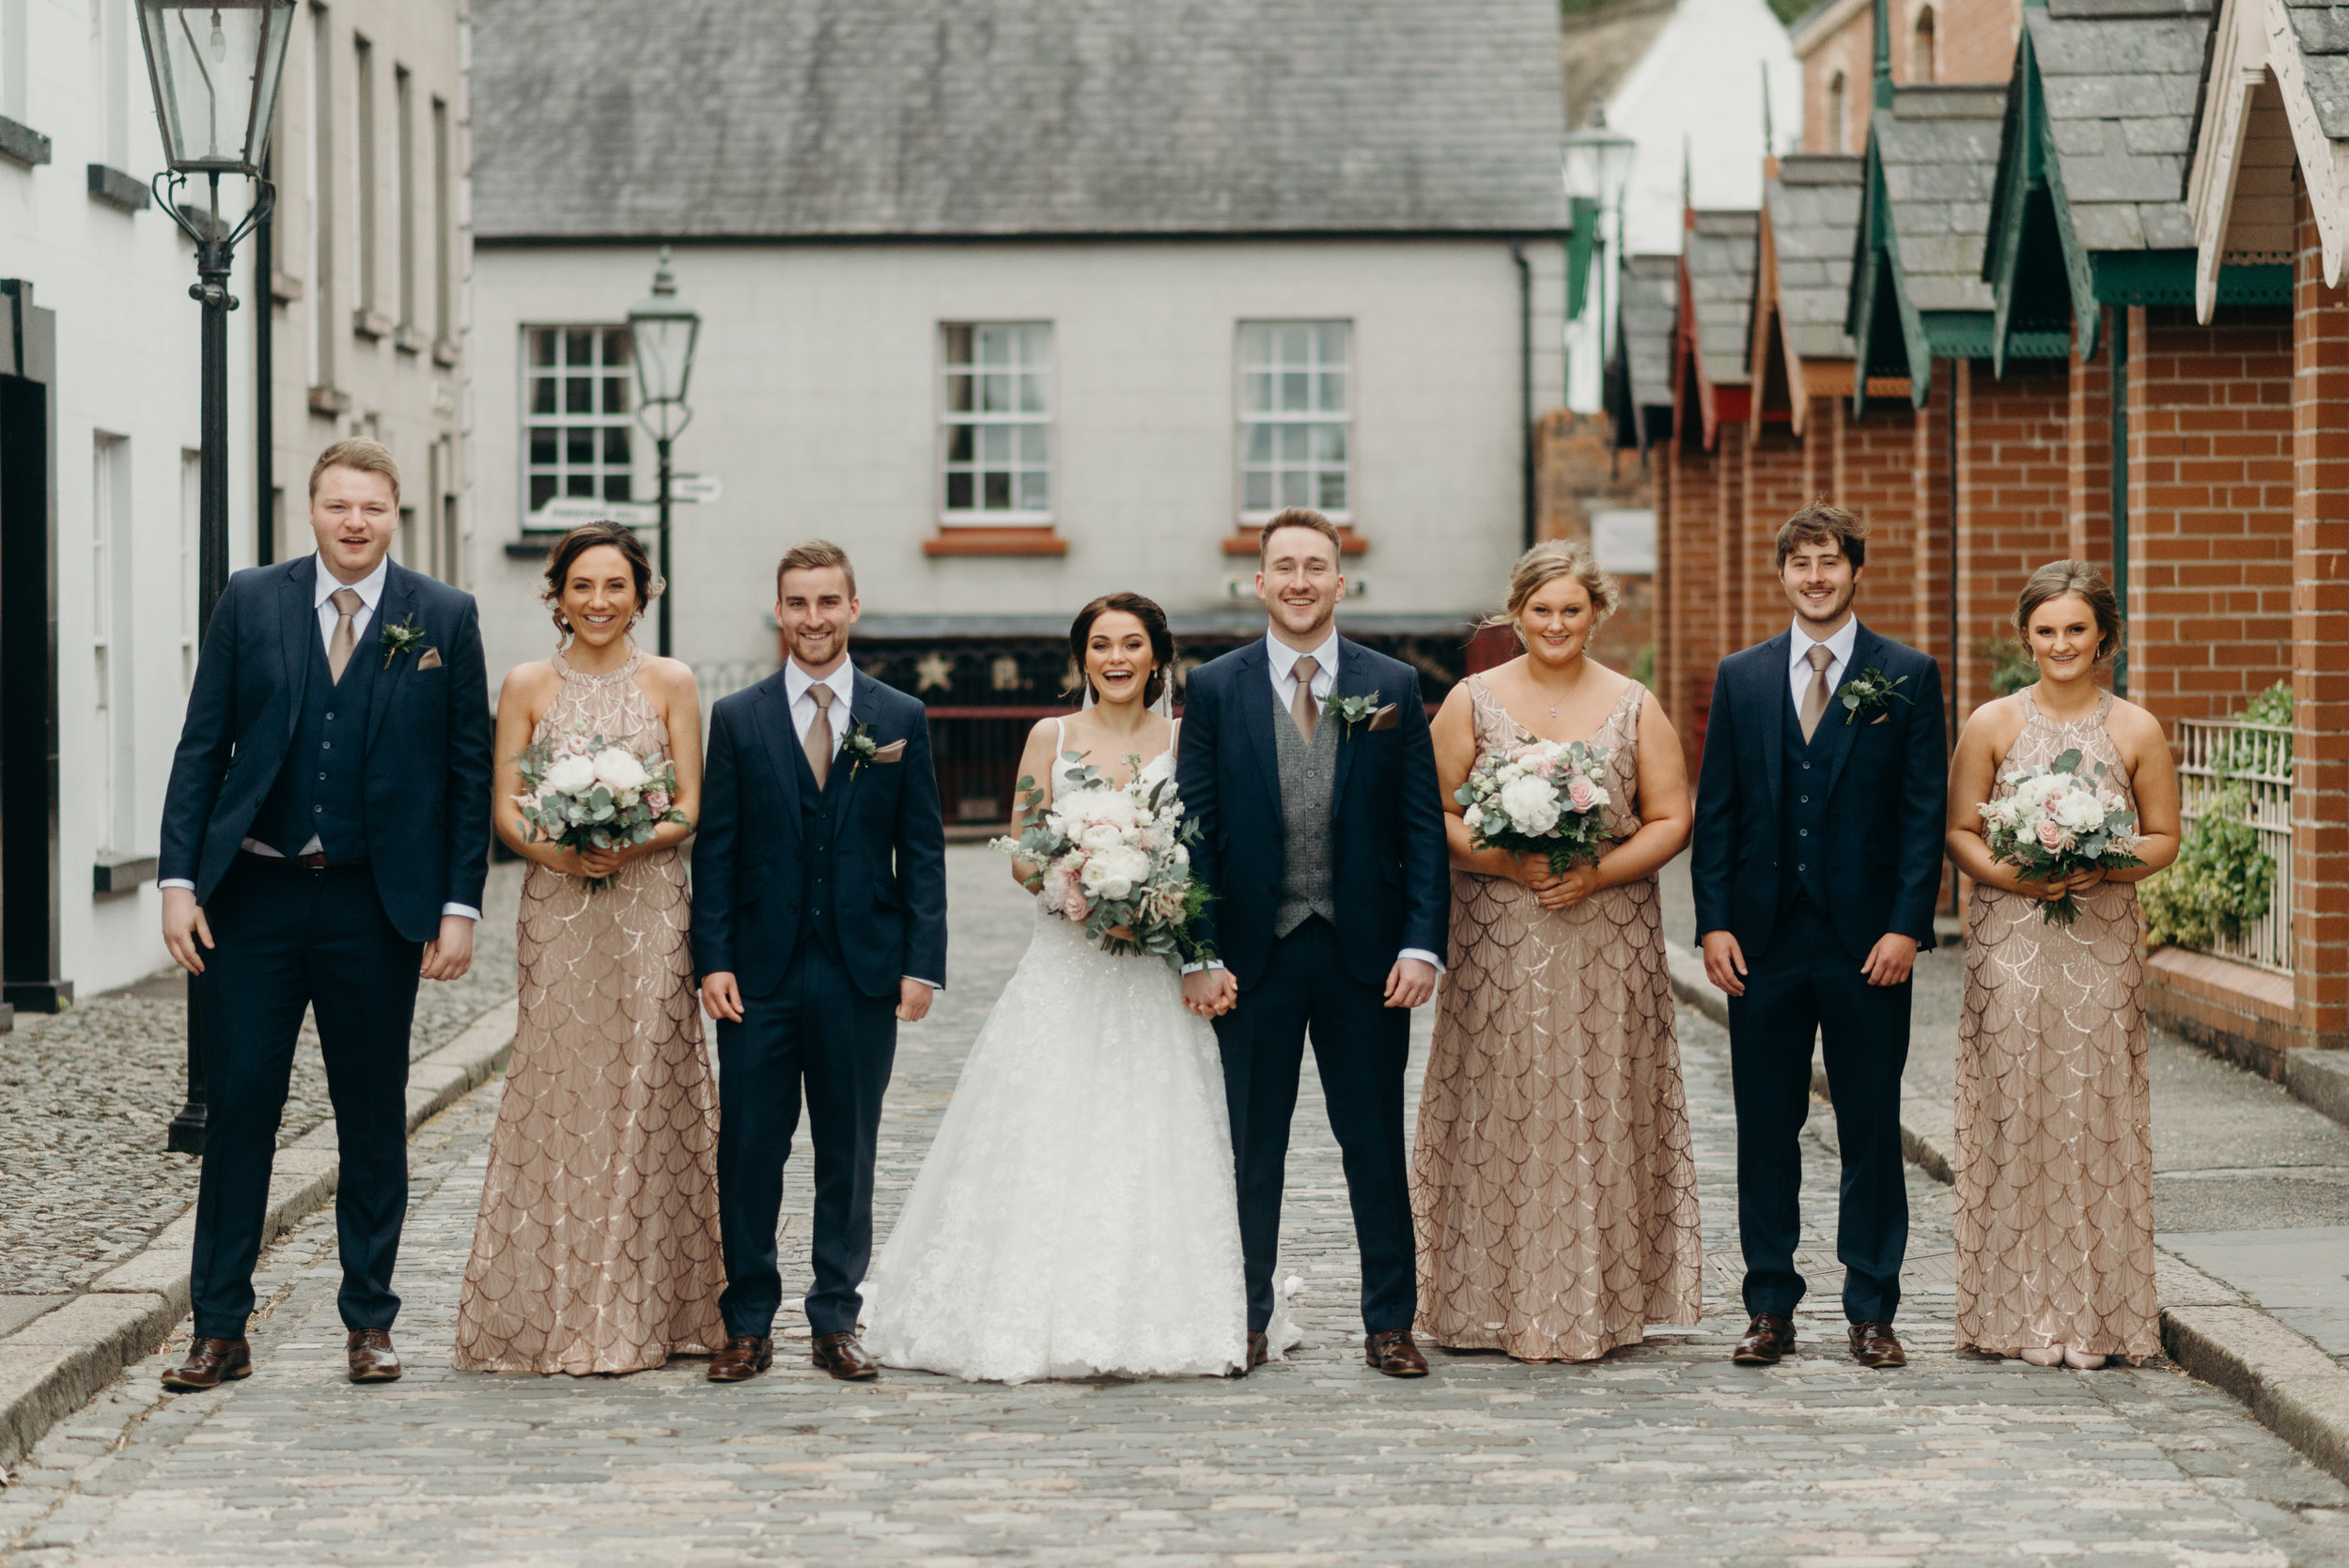 clandeboye wedding photos-46.jpg